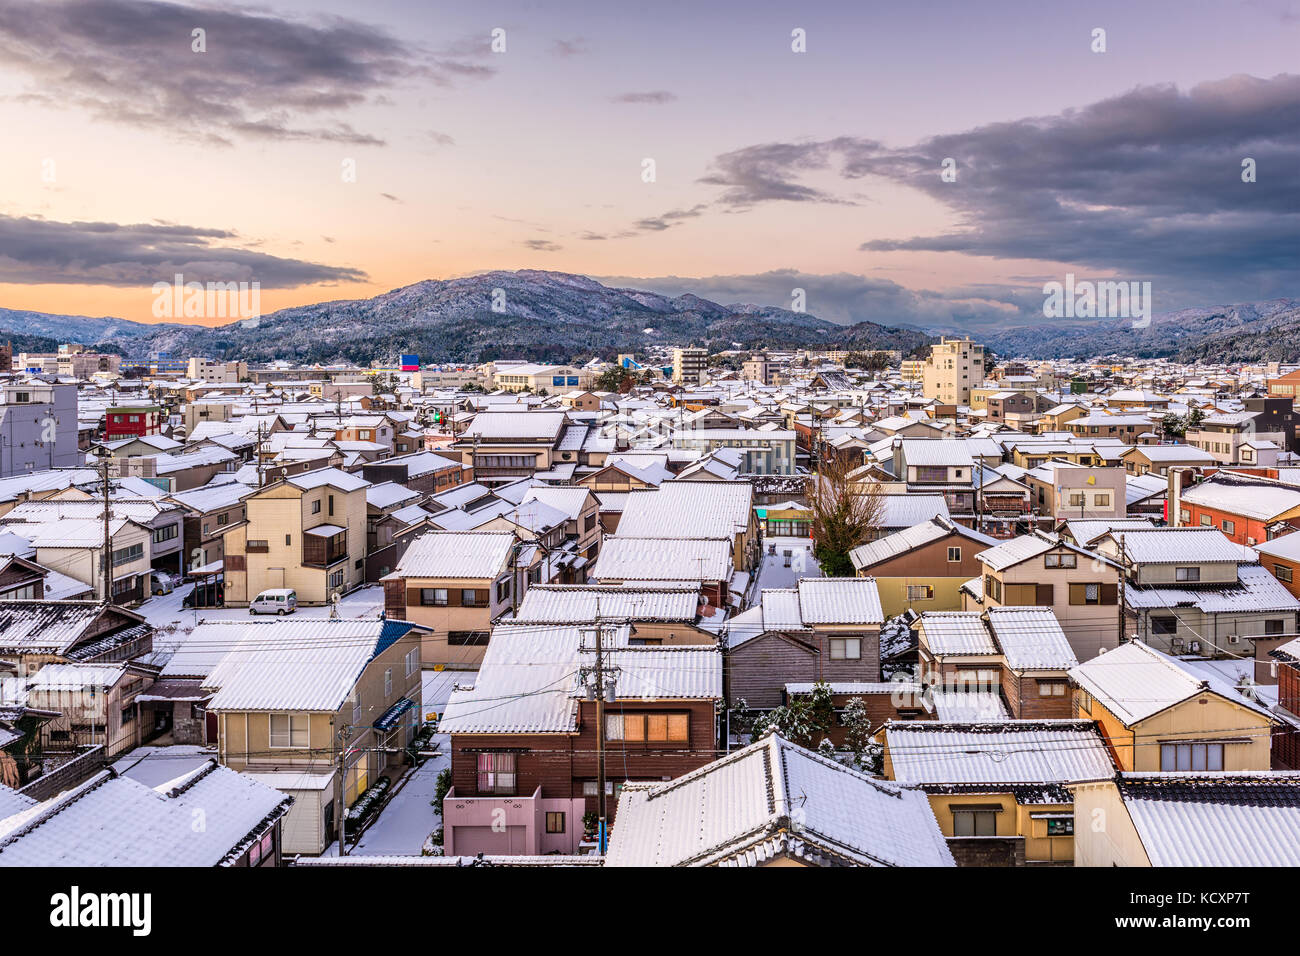 Wajima, Ishikawa, Japan town skyline in winter. - Stock Image